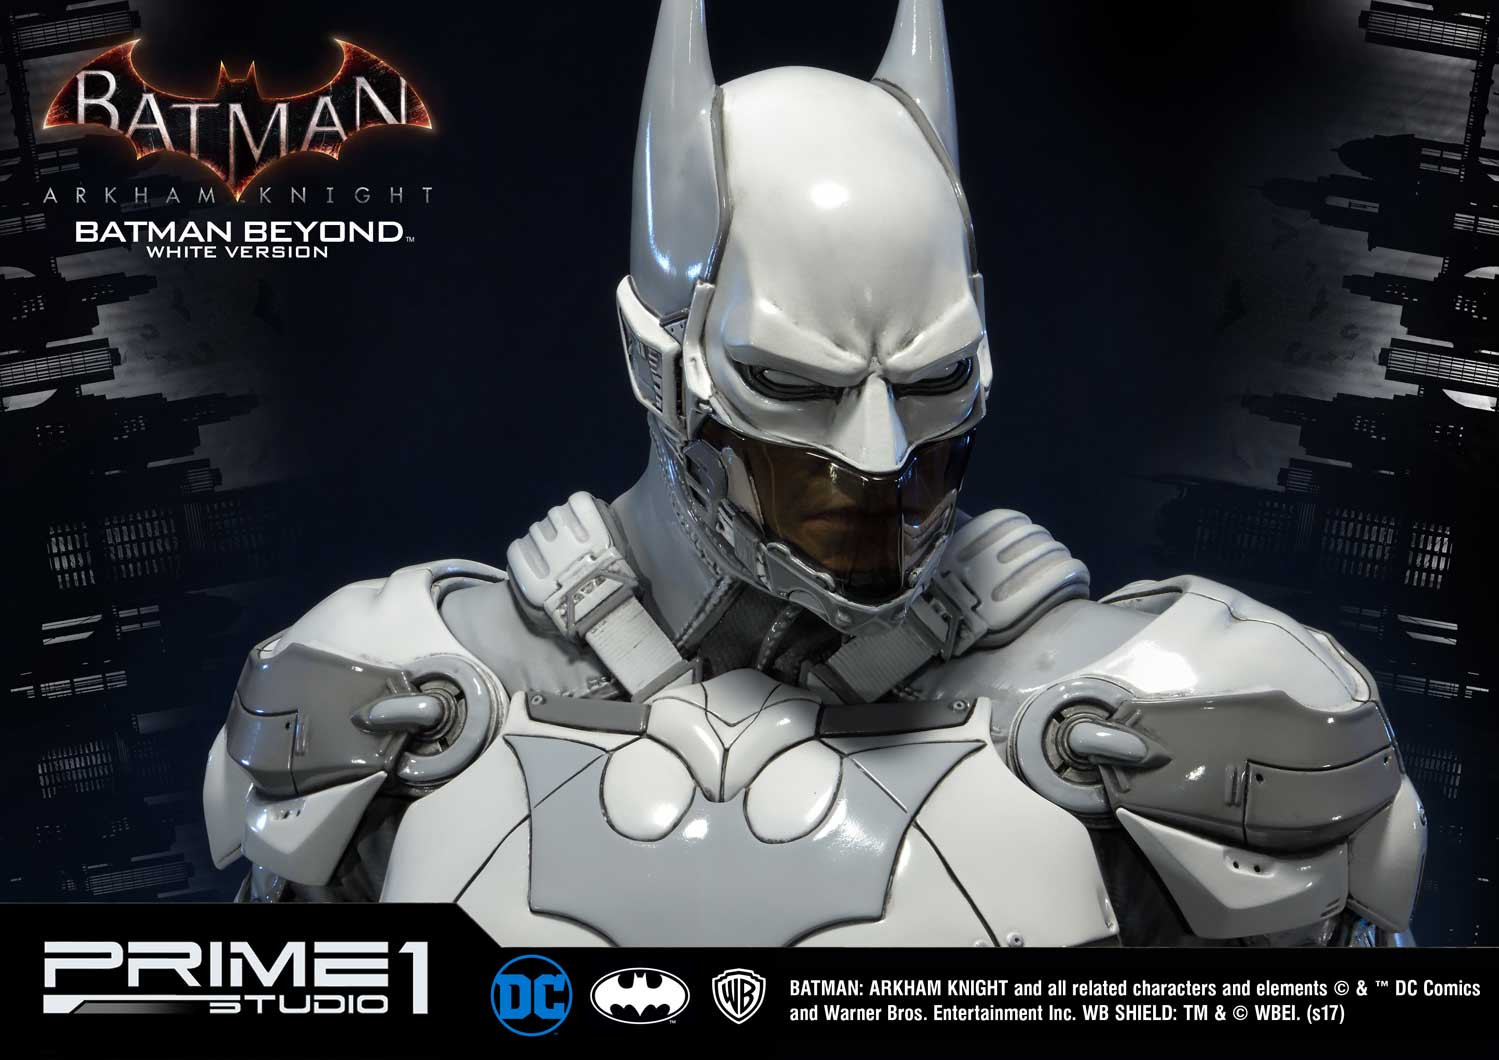 Batman Arkham Knight Batman Beyond White Version